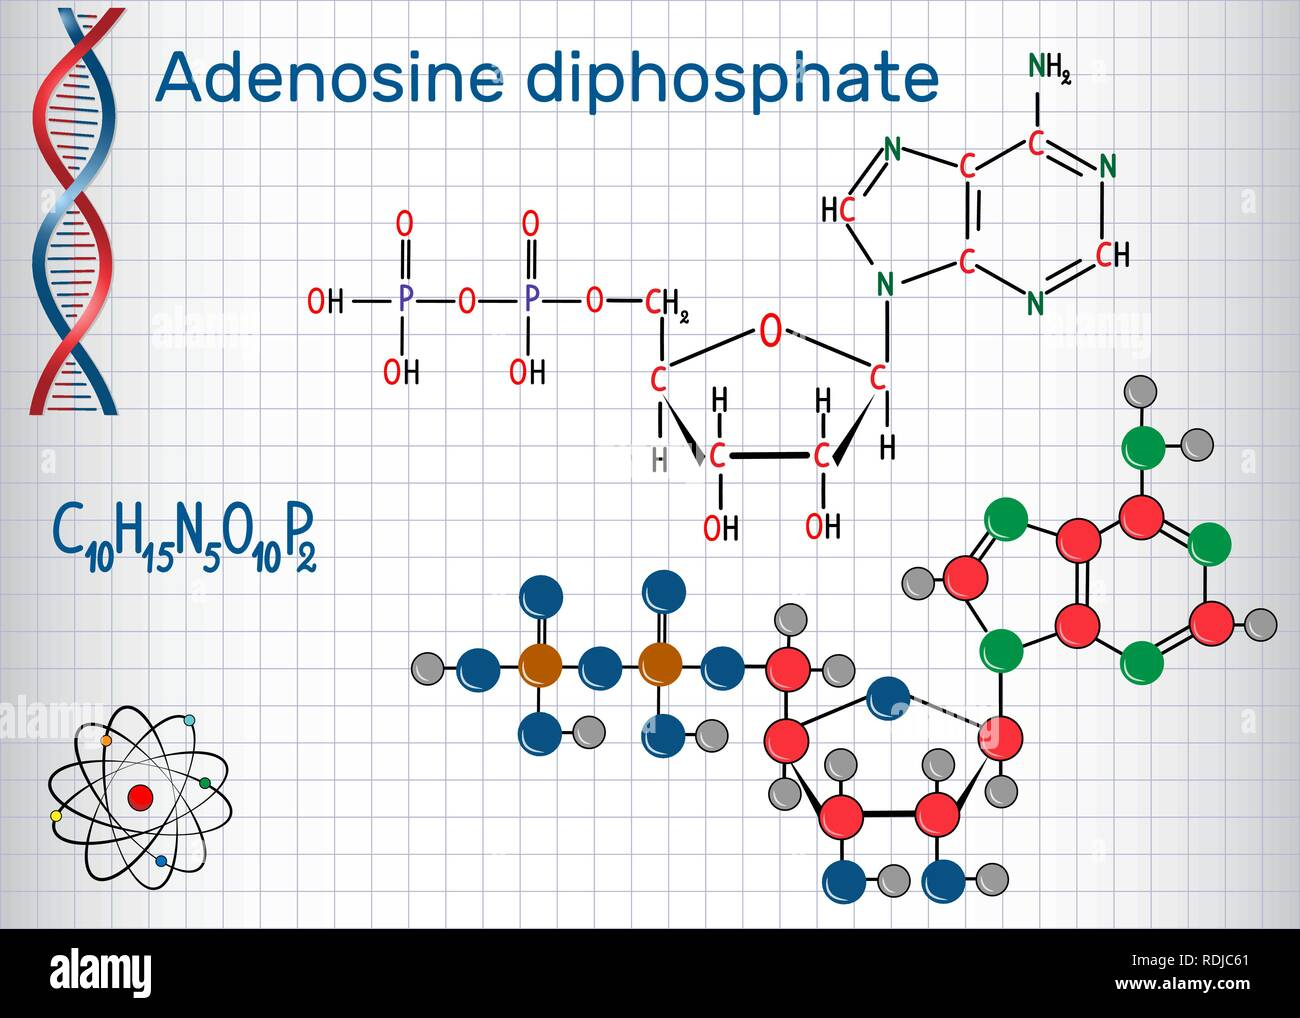 Adenosine diphosphate (ADP) molecule , is an important organic compound in metabolism and is energy transfer in living cells . Sheet of paper in a cag - Stock Image